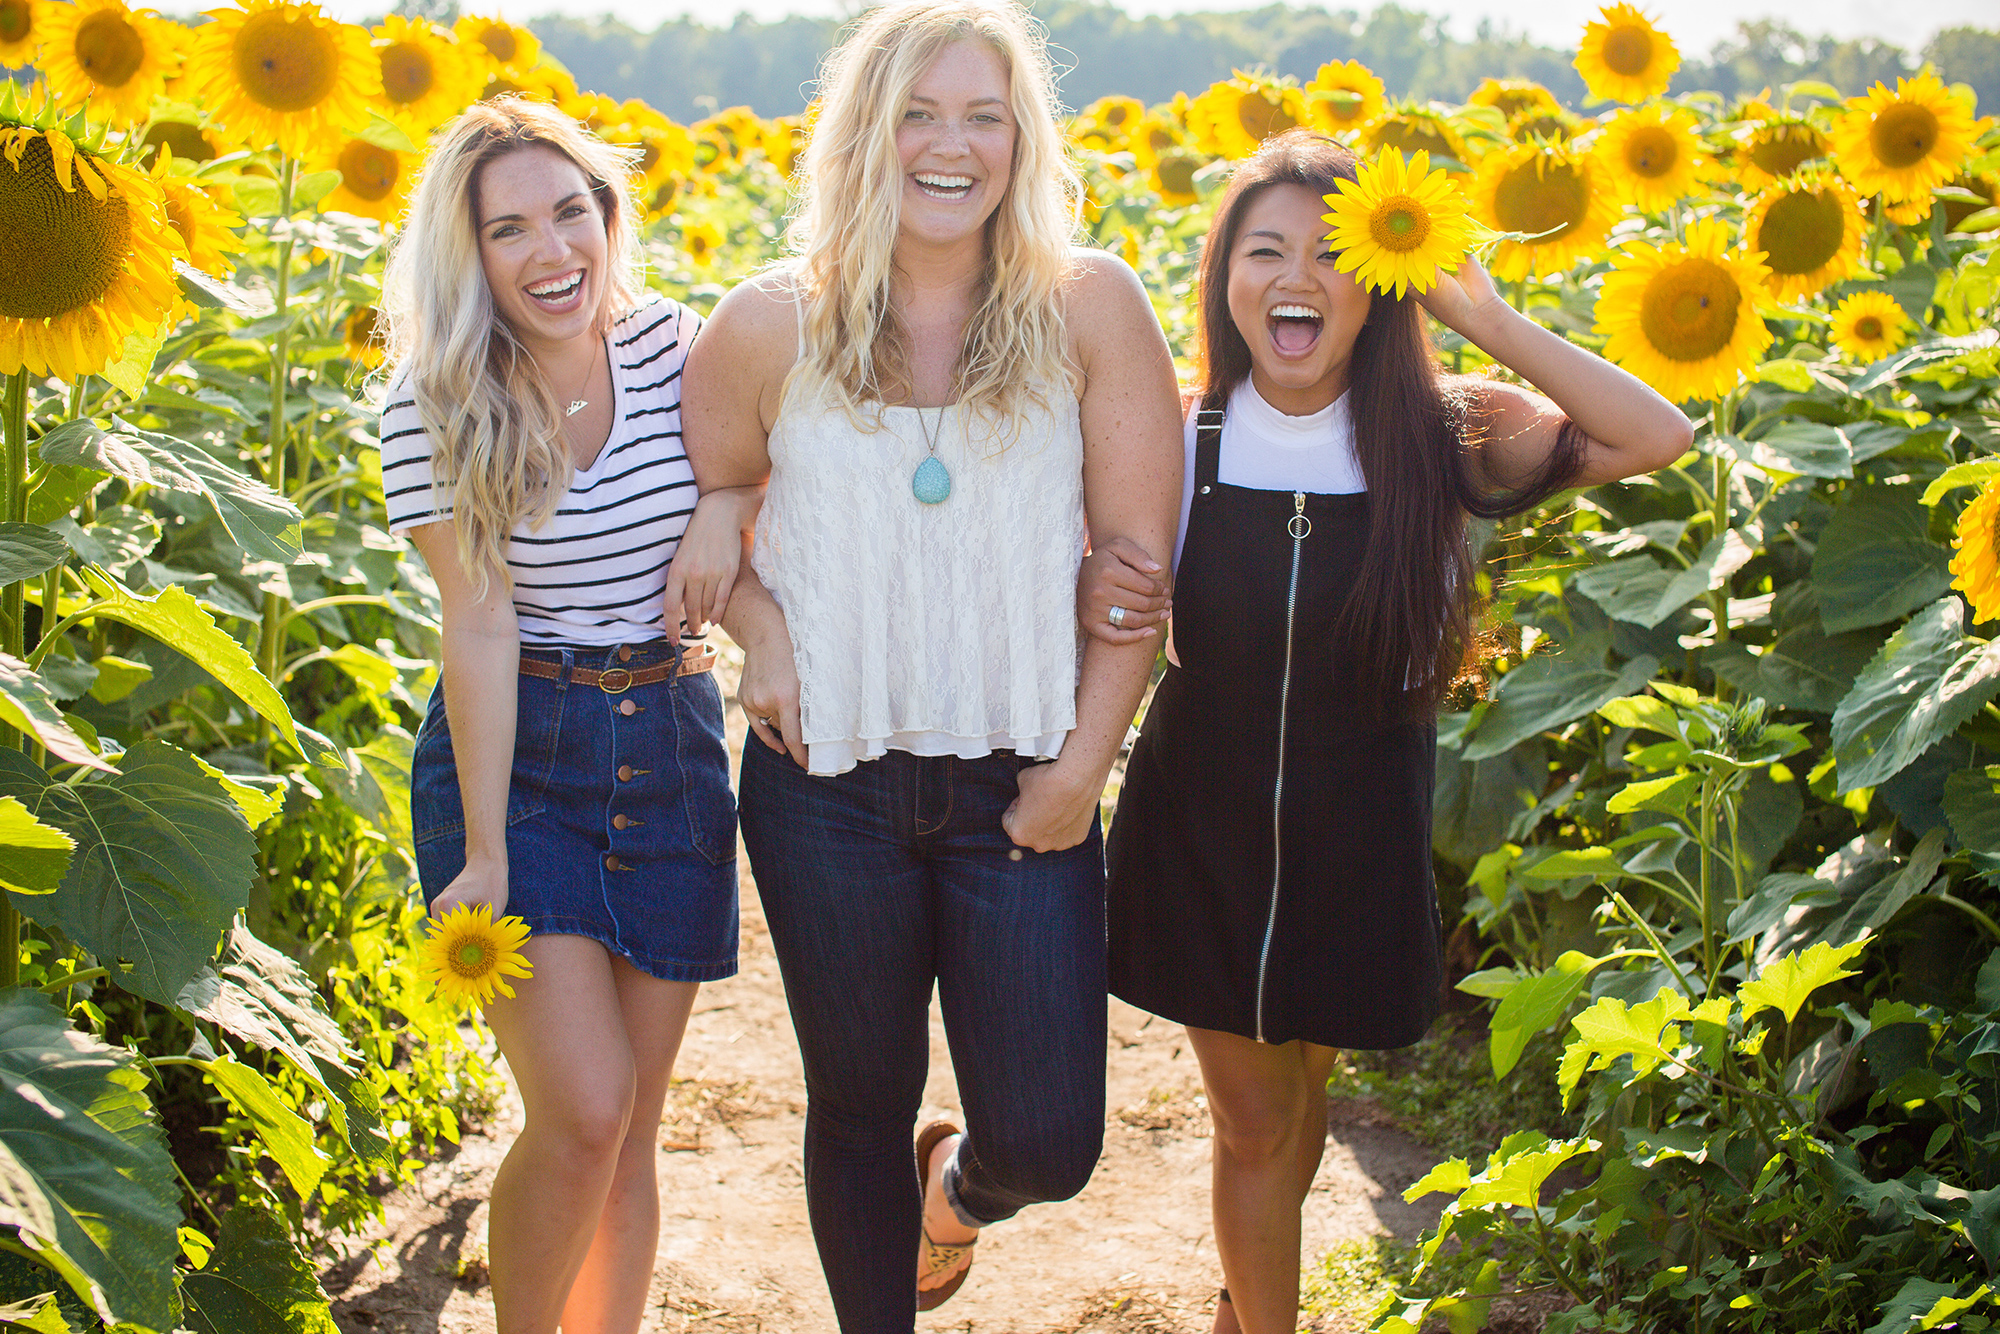 Friends laughing in field of flowers